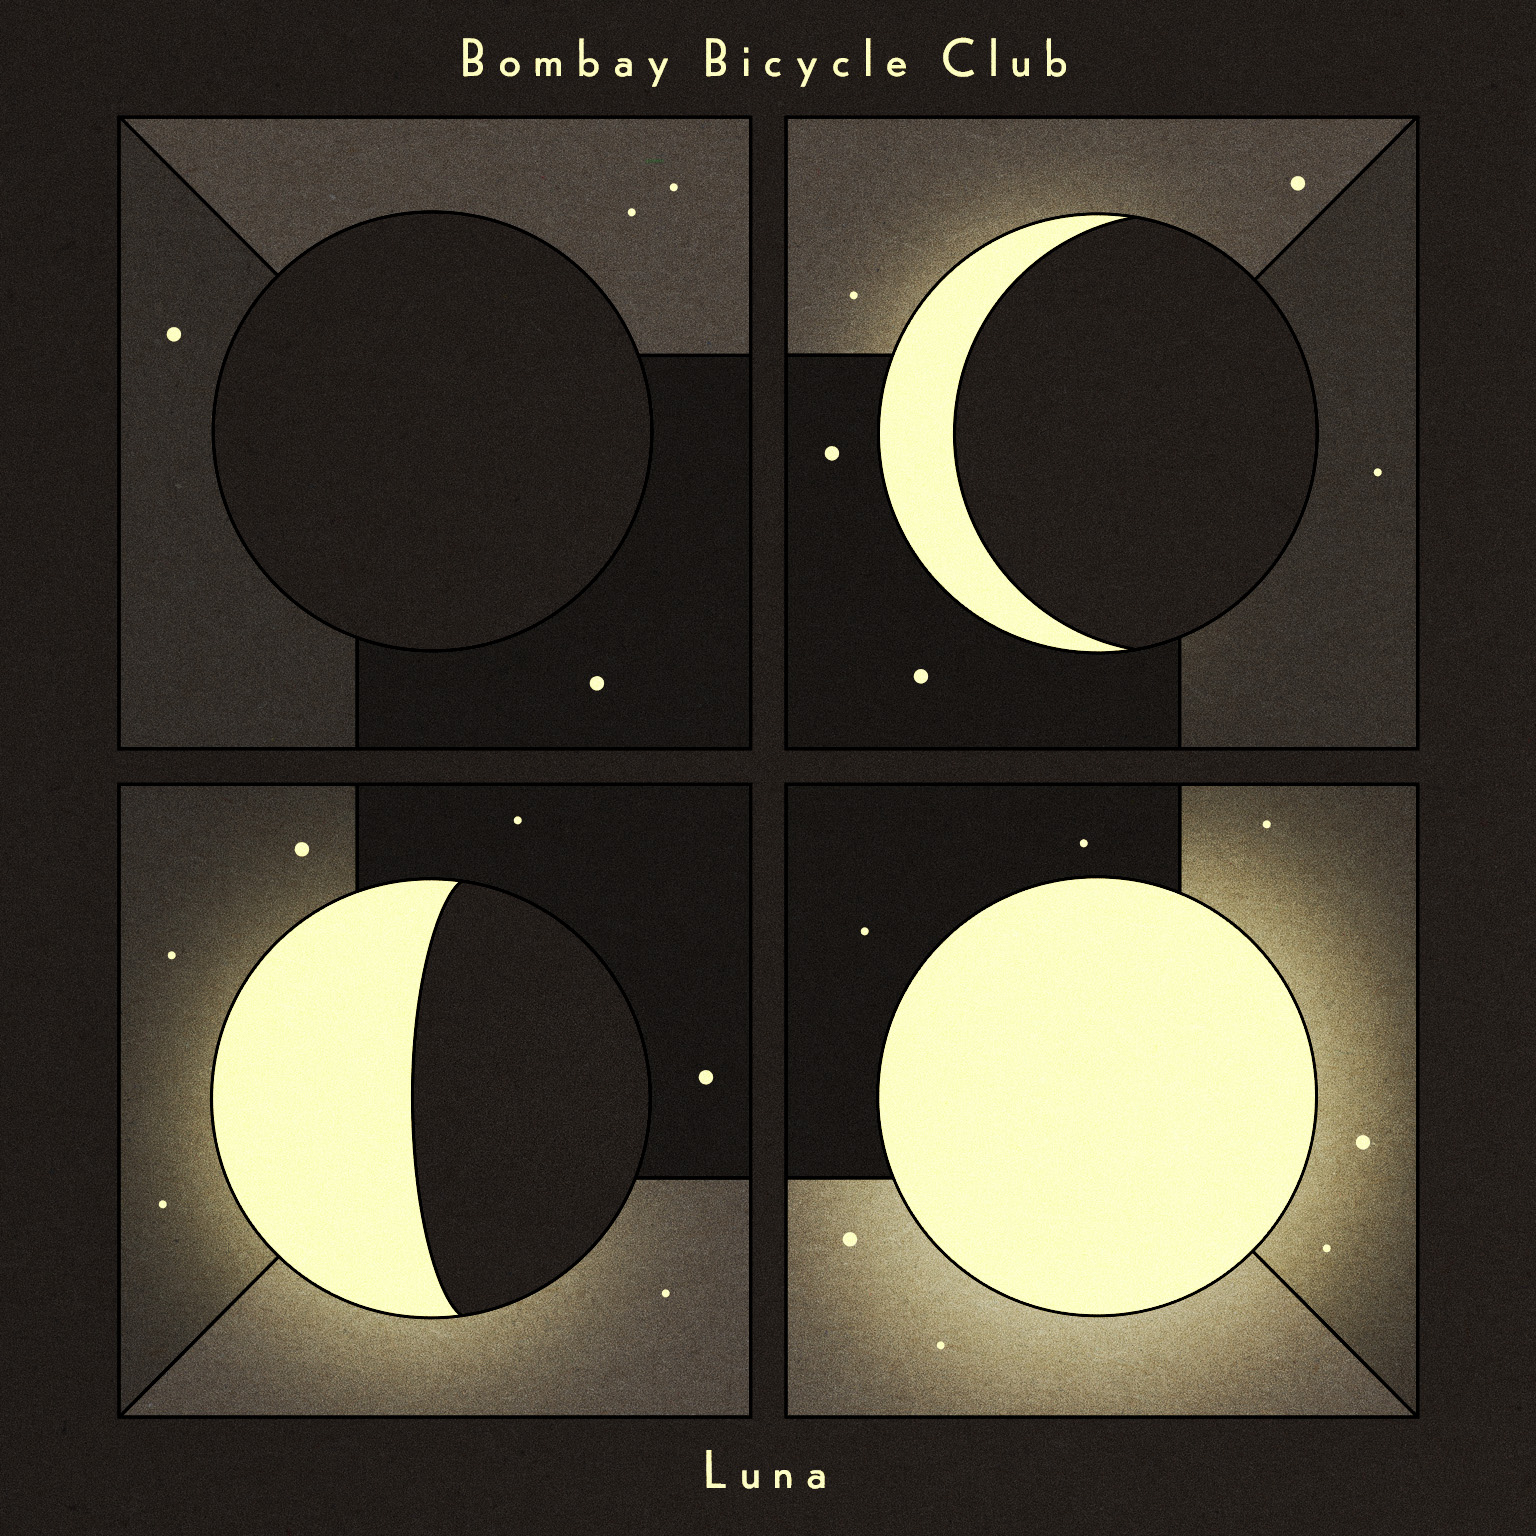 Bombay Bicycle Club Logo London's Bombay Bicycle Club